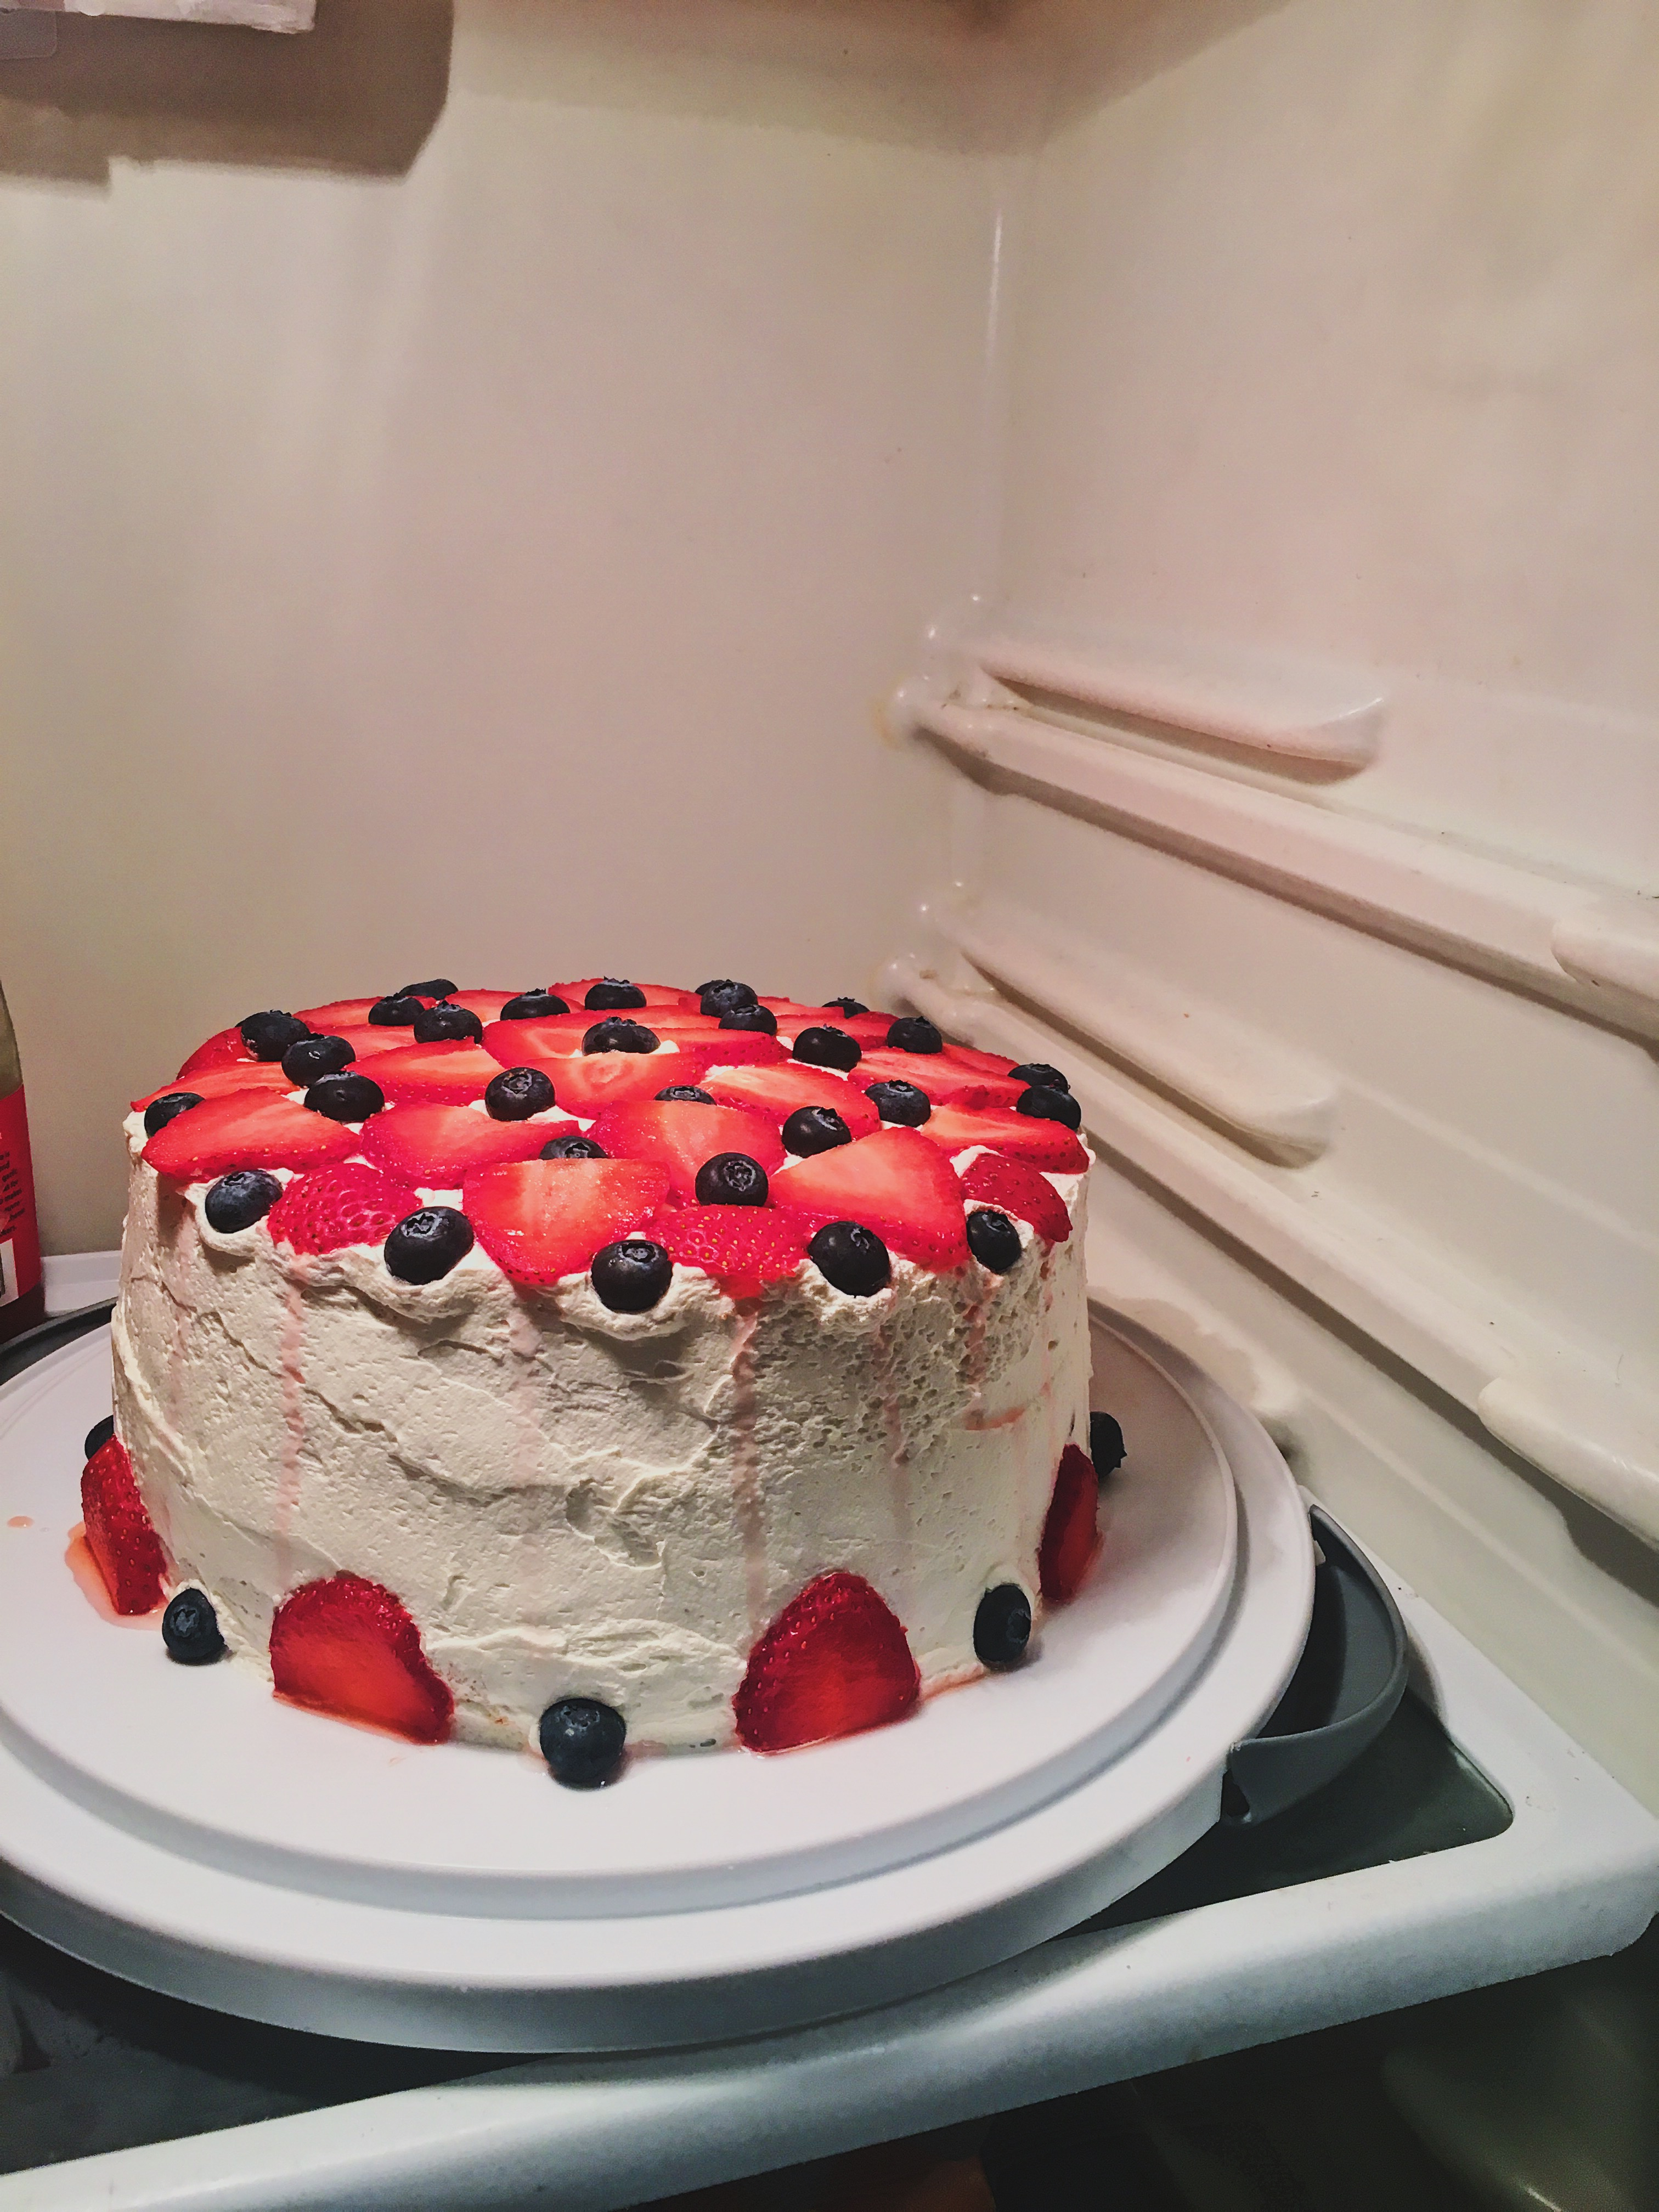 refrigerated cake